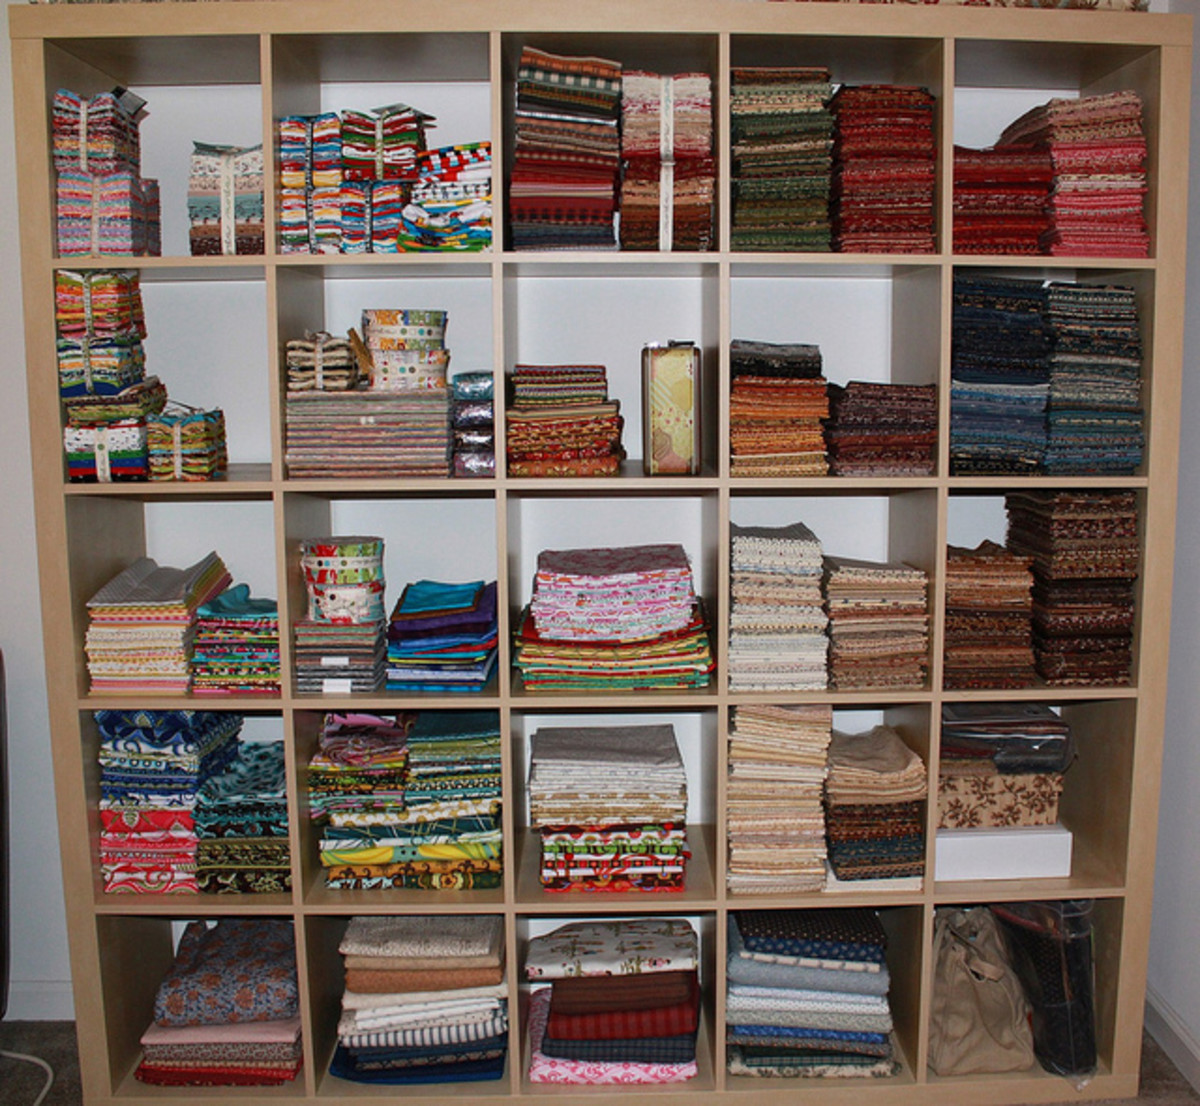 This quilter has a large, neatly organized, stash of fabric.